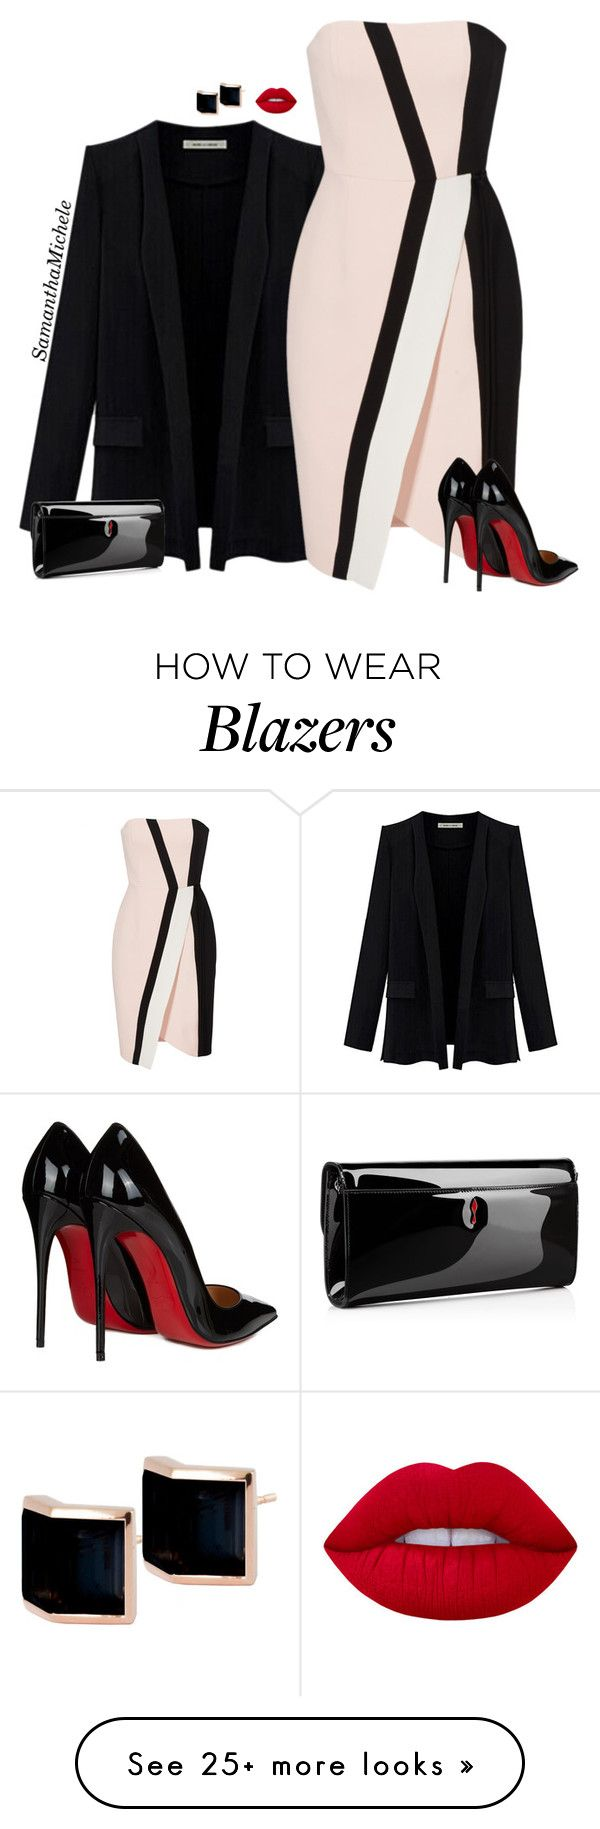 """Untitled #455"" by samanthamichele on Polyvore featuring J. Mendel, Christian Louboutin, Kattri and Lime Crime"